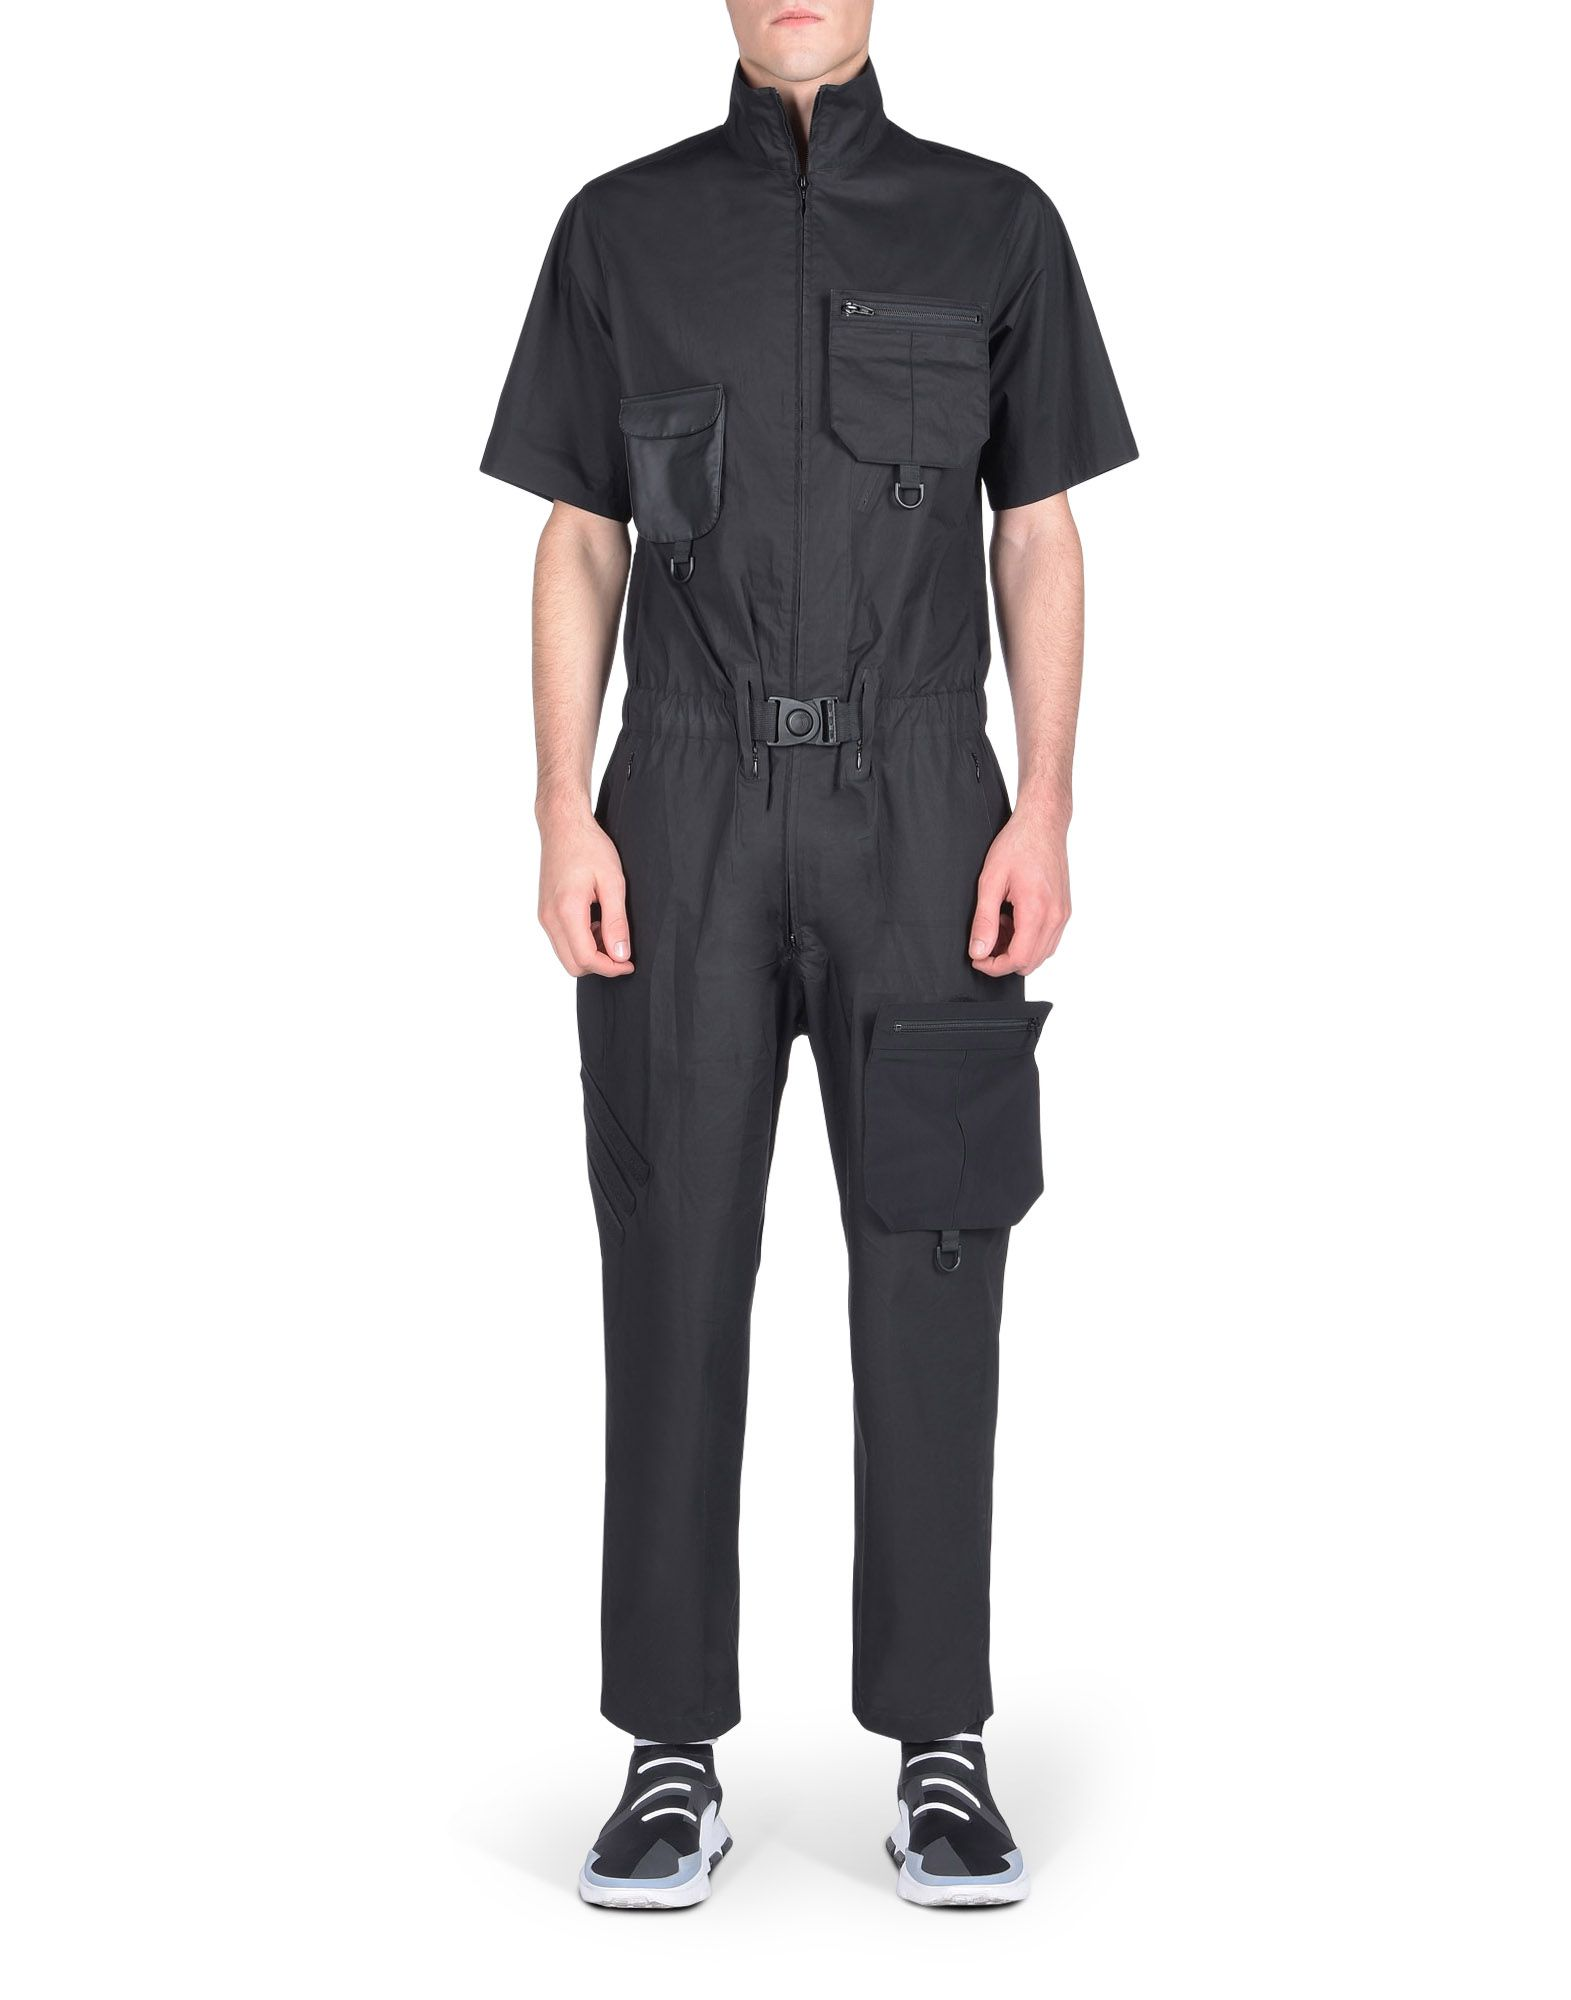 Y-3 MILITARY JUMPSUIT PANTS unisex Y-3 adidas